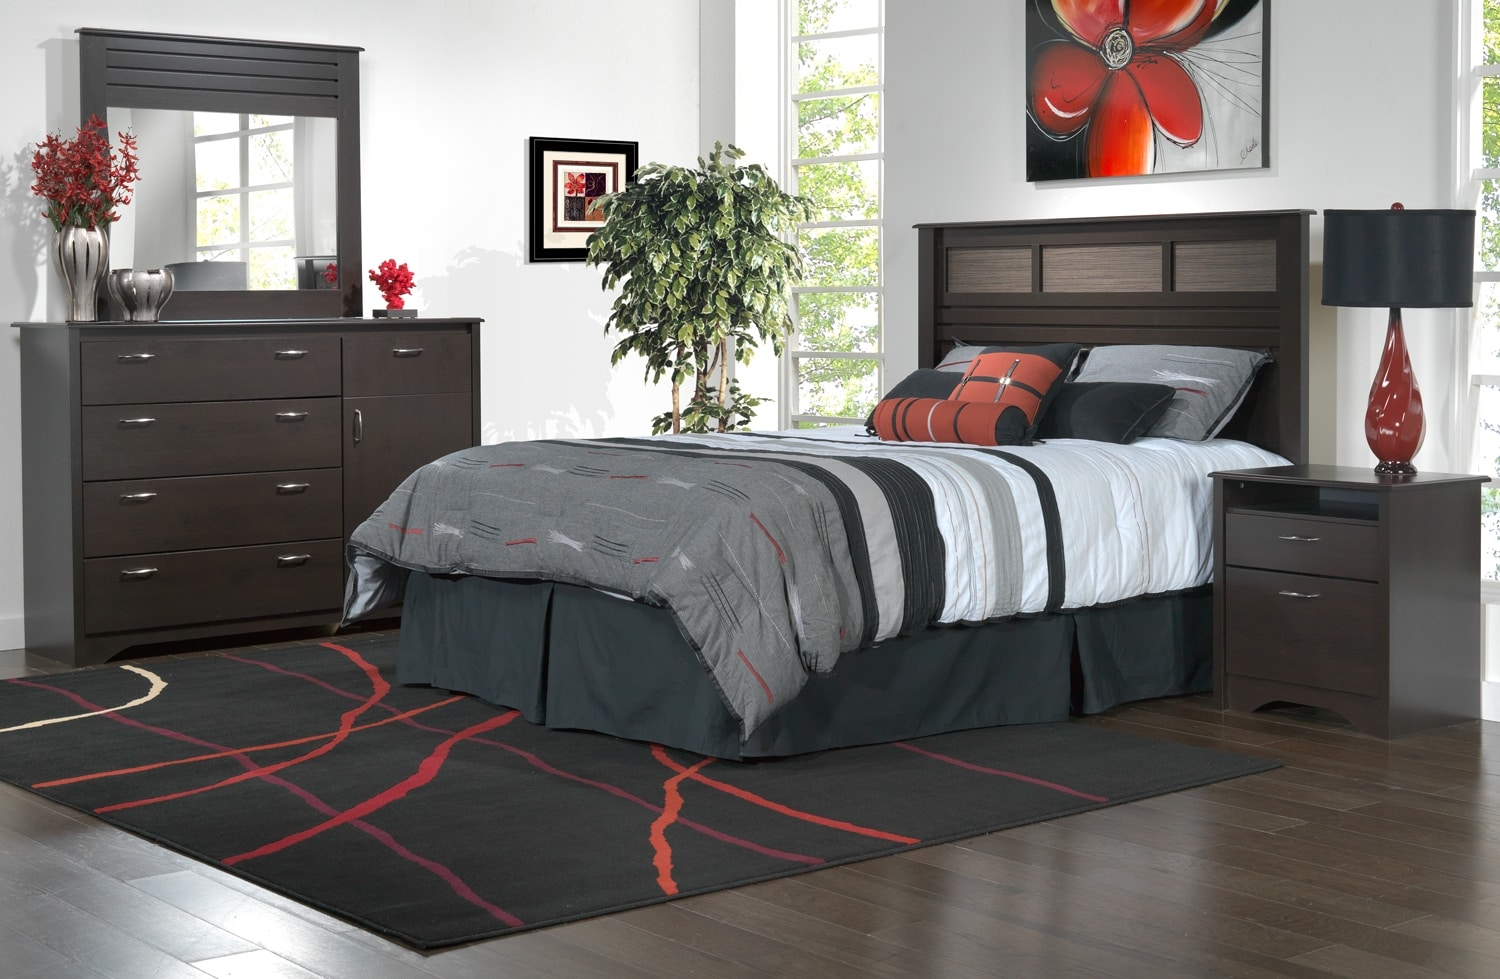 Does Raymour And Flanigan Sell Adjustable Beds : Rodea bedroom set best free home design idea